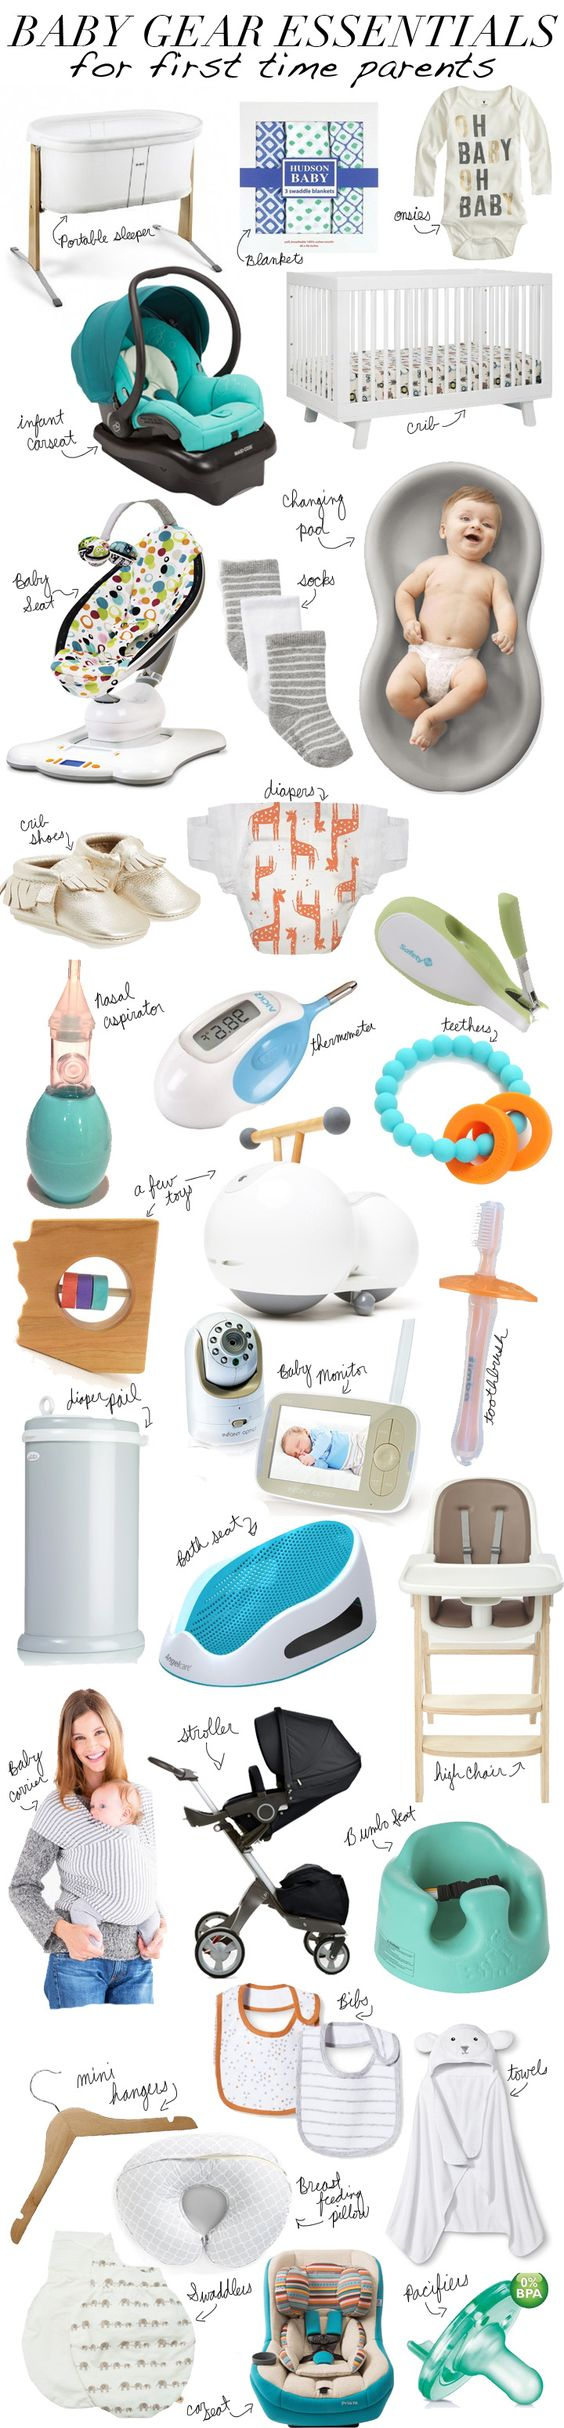 30 Essentials Every 1st Time Parent Needs On Their Registry | www.mommasociety.com